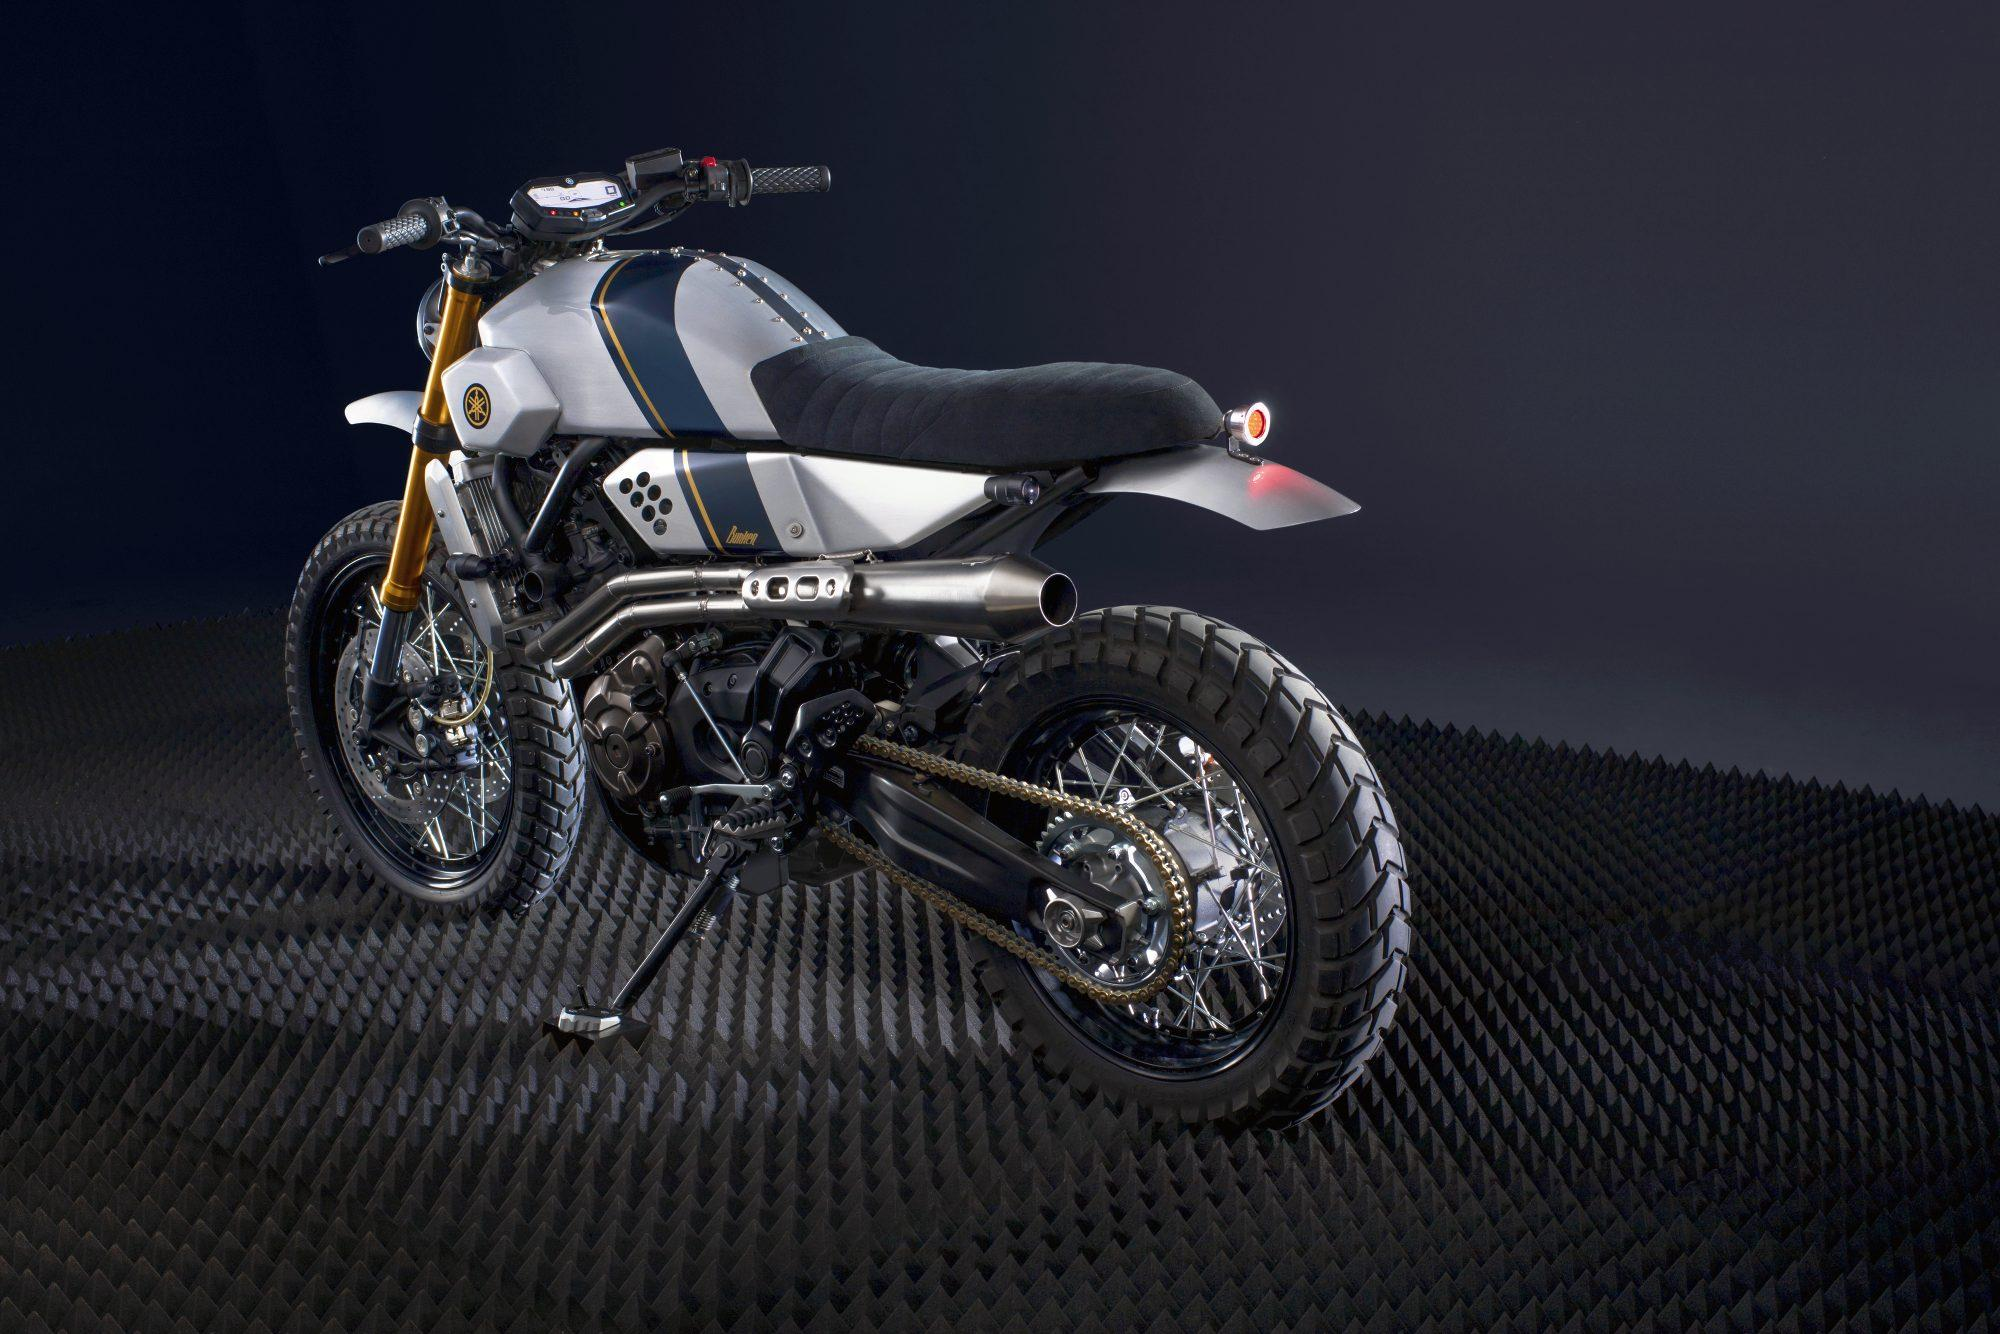 yamaha xsr700 bunker custom umbau motorrad fotos. Black Bedroom Furniture Sets. Home Design Ideas